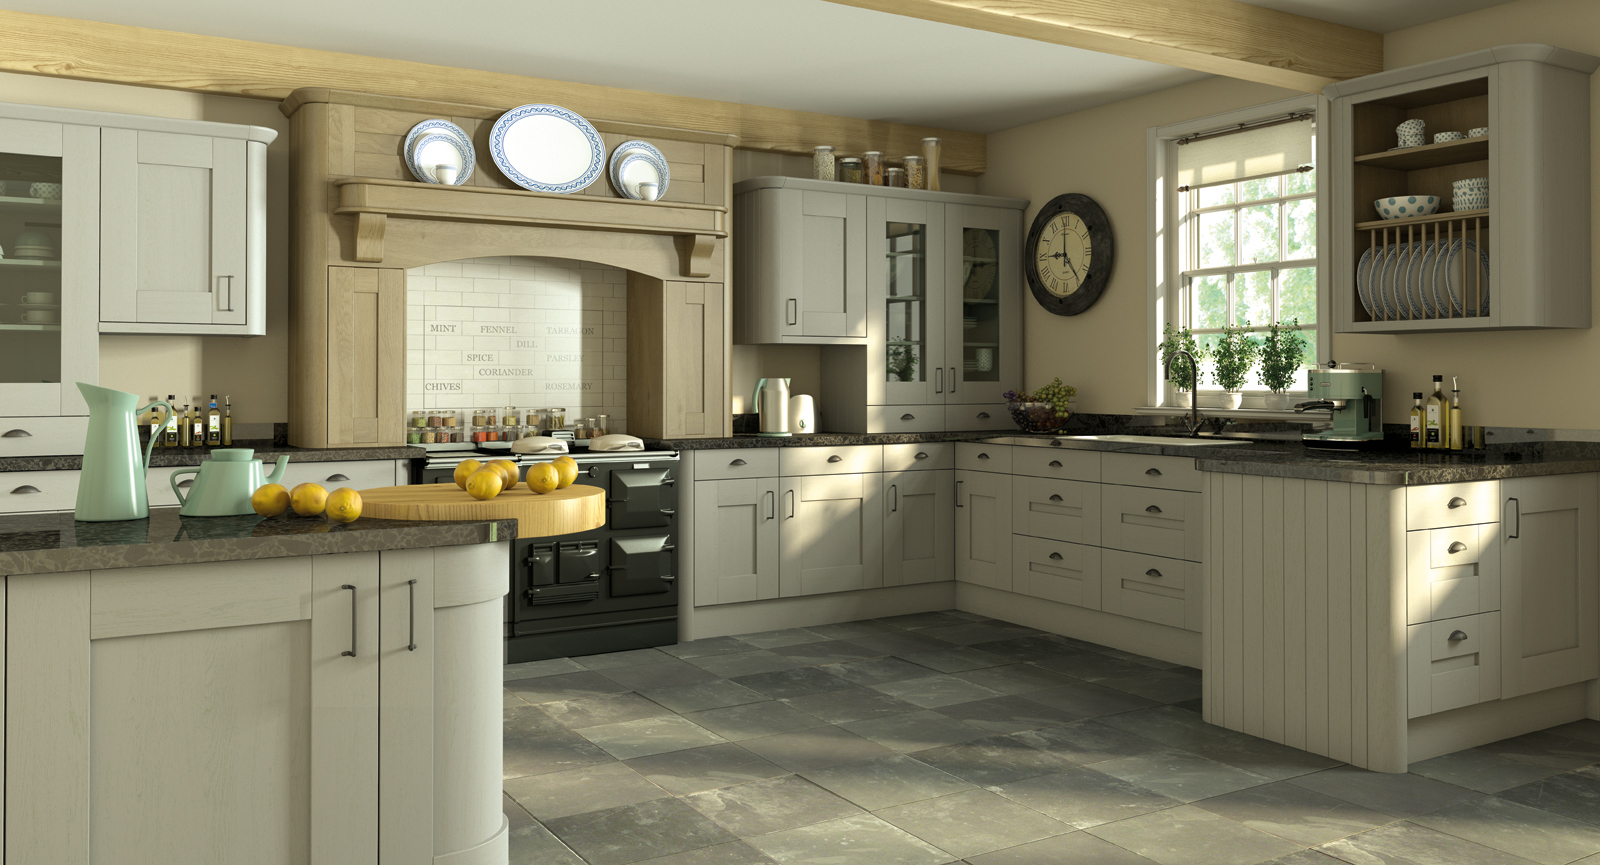 Where To Get A Kitchen From Of Hand Painted Shaker Kitchens Hallmark Kitchen Designs